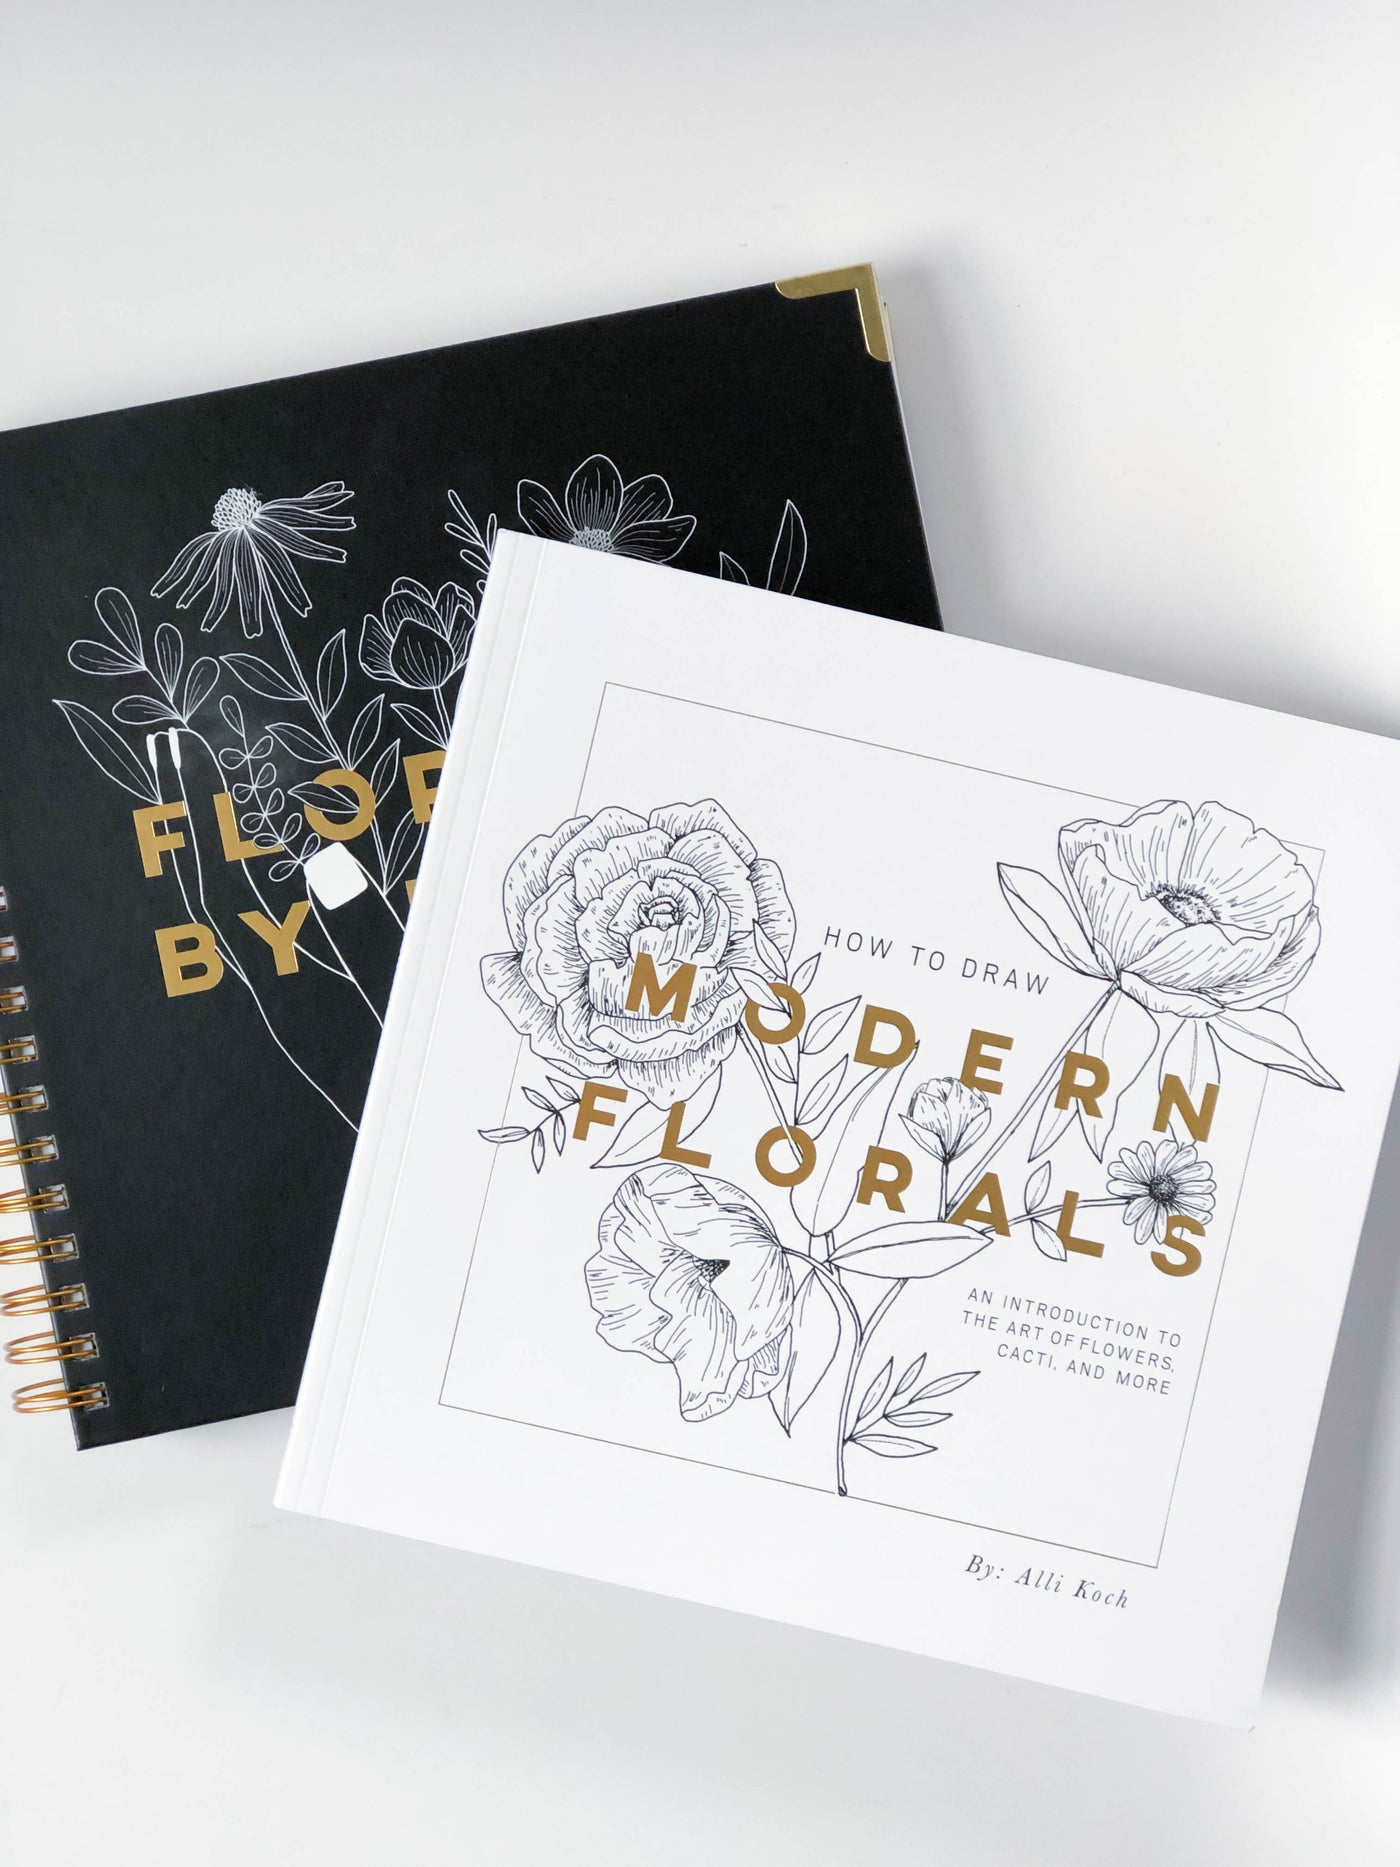 How to Draw Modern Florals | An Introduction to the Art of Flowers, Cacti and More